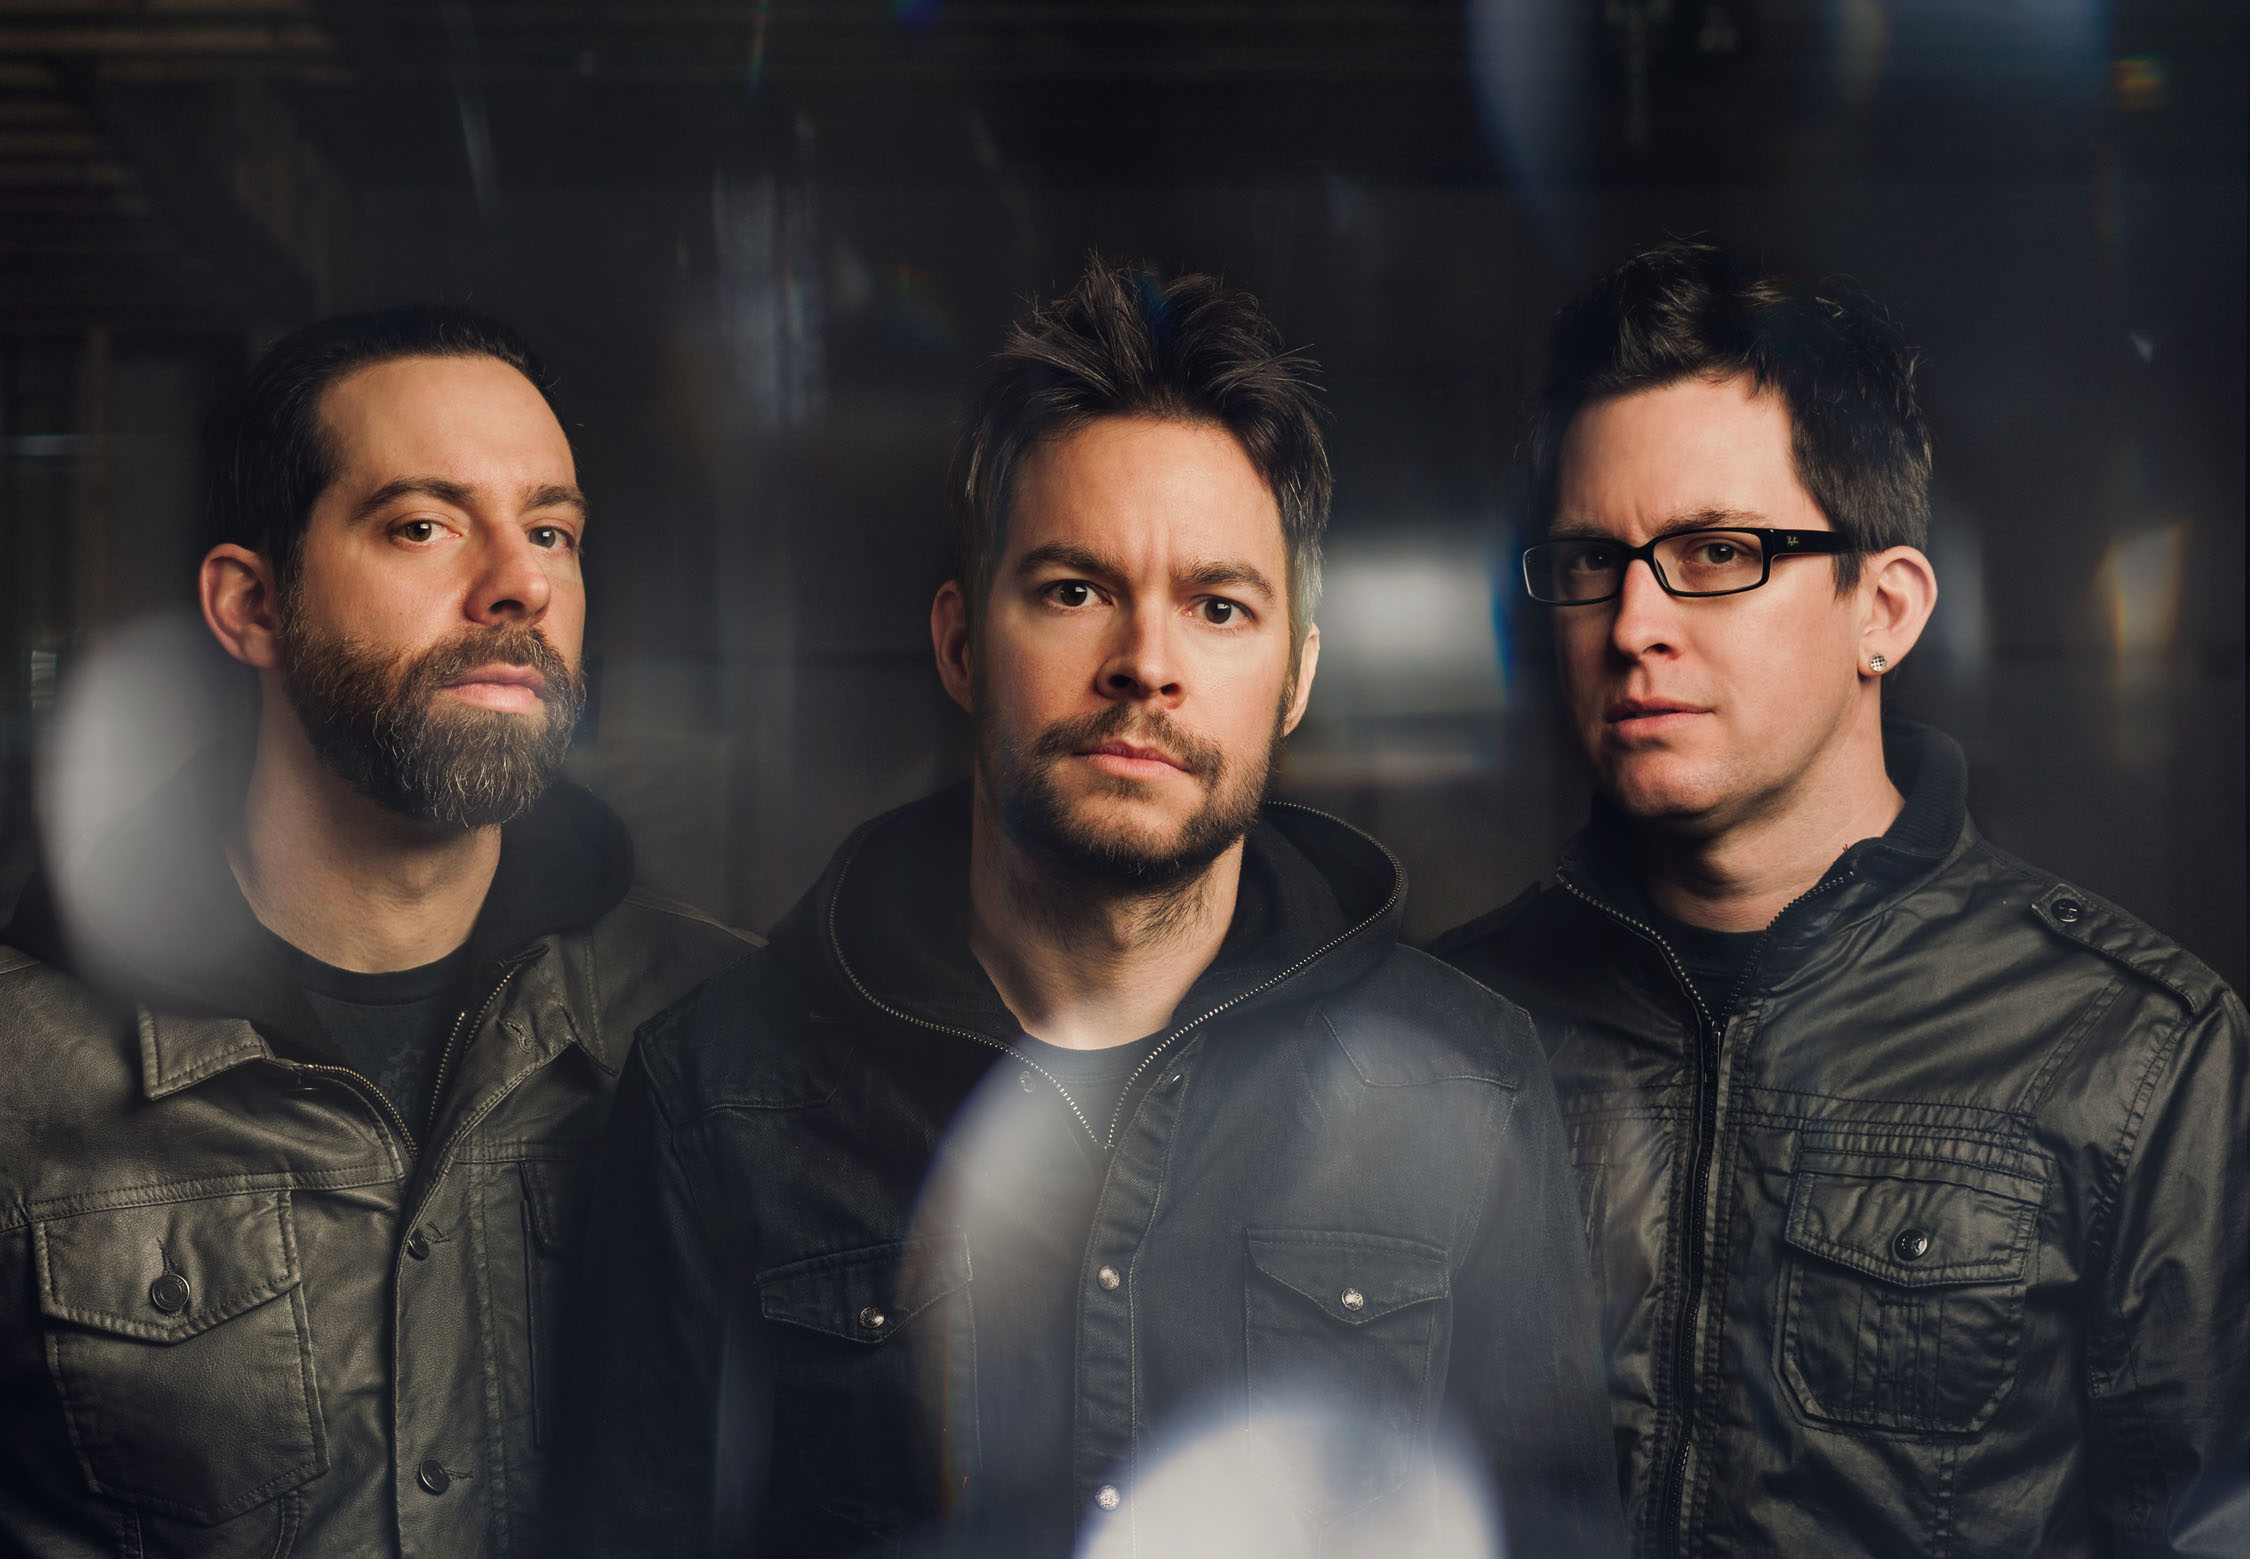 Alternative-metal band Chevelle on Aug. 11 performed with grunge rockers Bush at Musikfest in Bethlehem.  (Courtesy Photo)